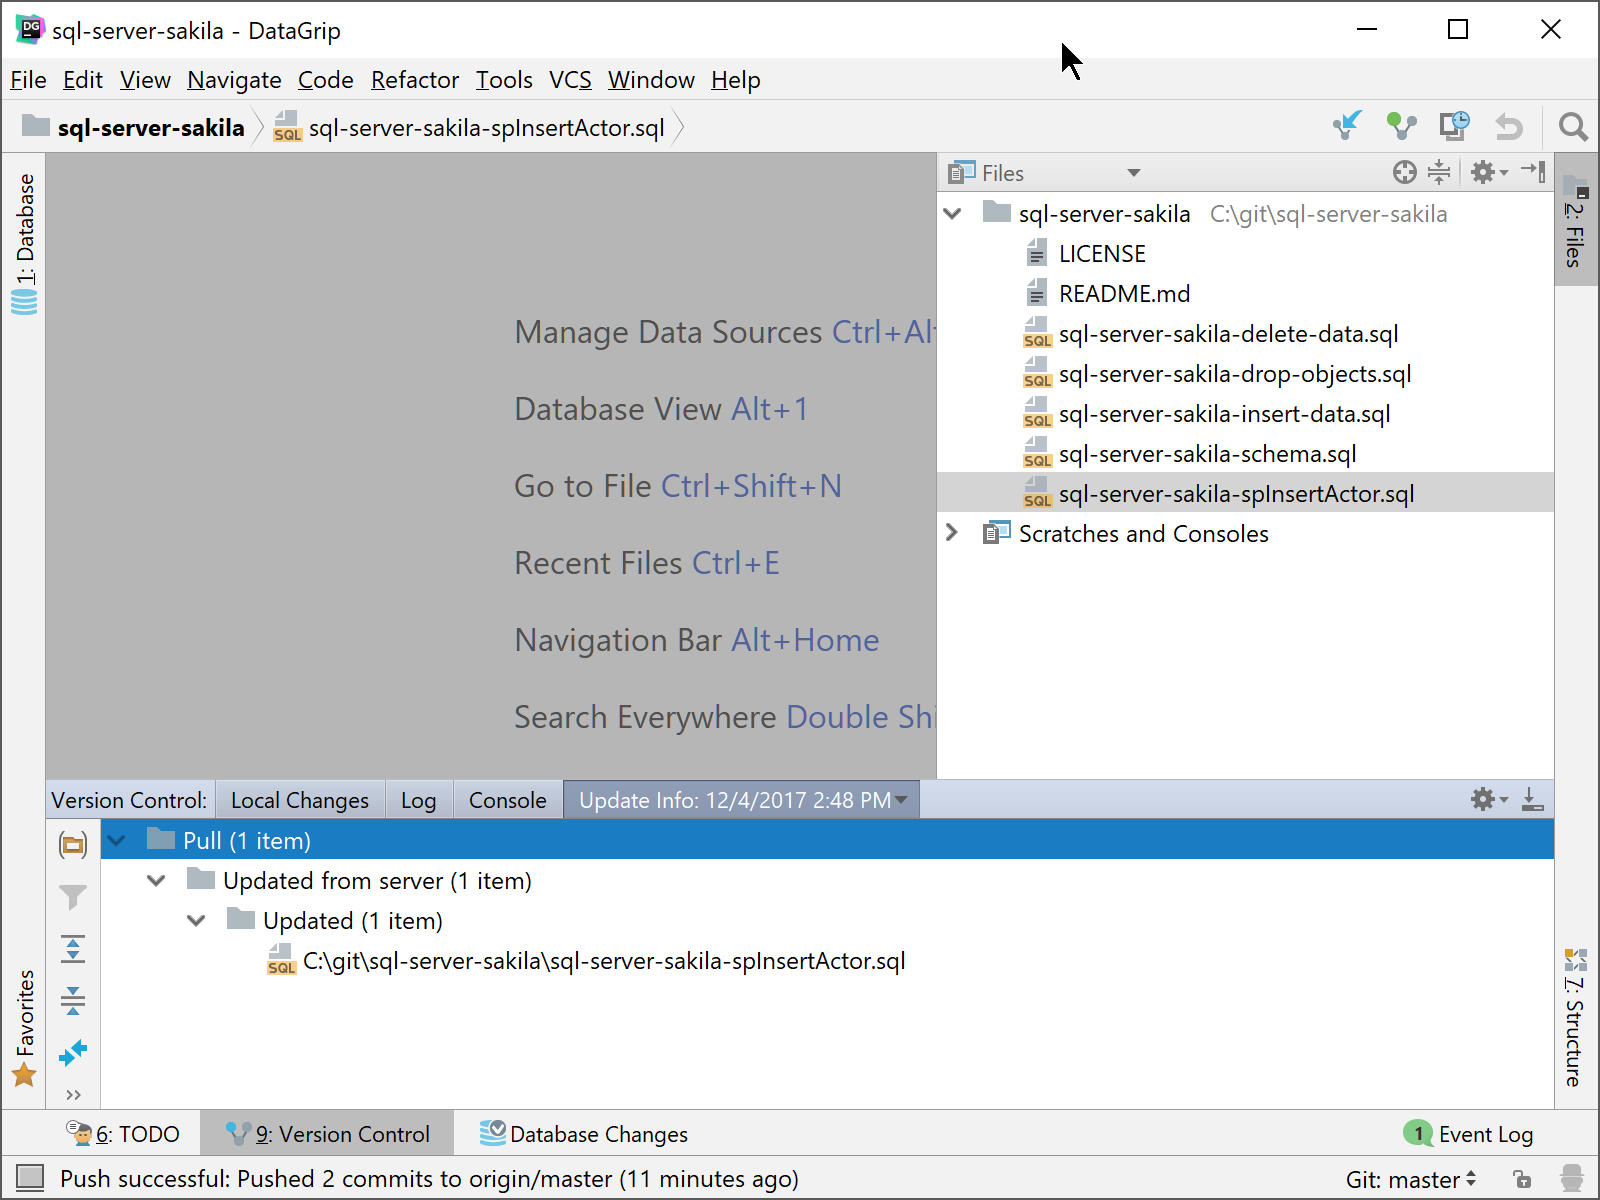 DataGrip pull in Version Control pane